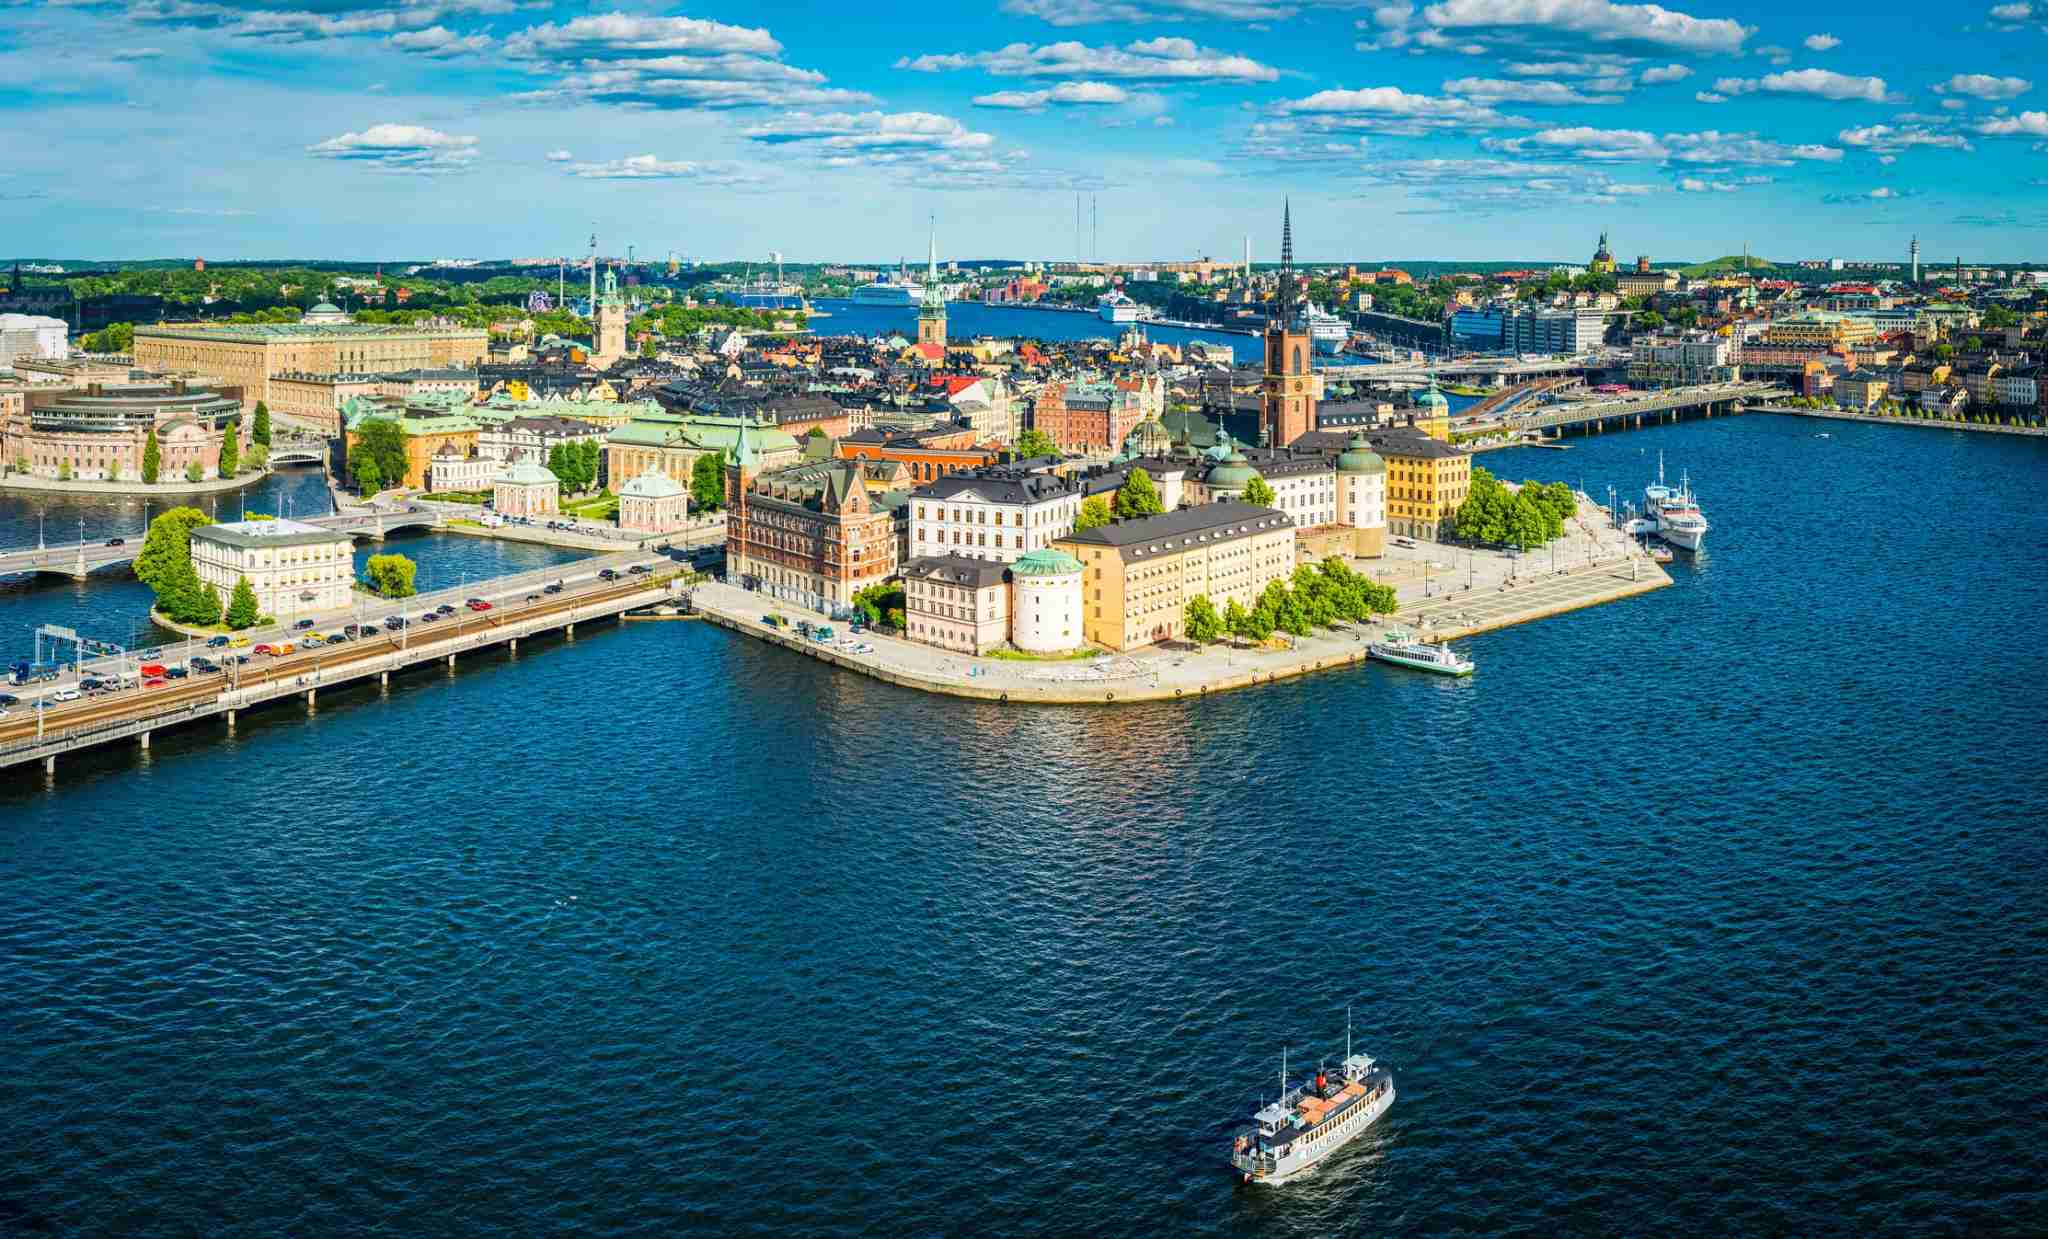 Panoramic aerial view over the blue summer skies above the iconic waterfront of Gamla Stan and Sodermalm in the heart of Stockholm, Sweden